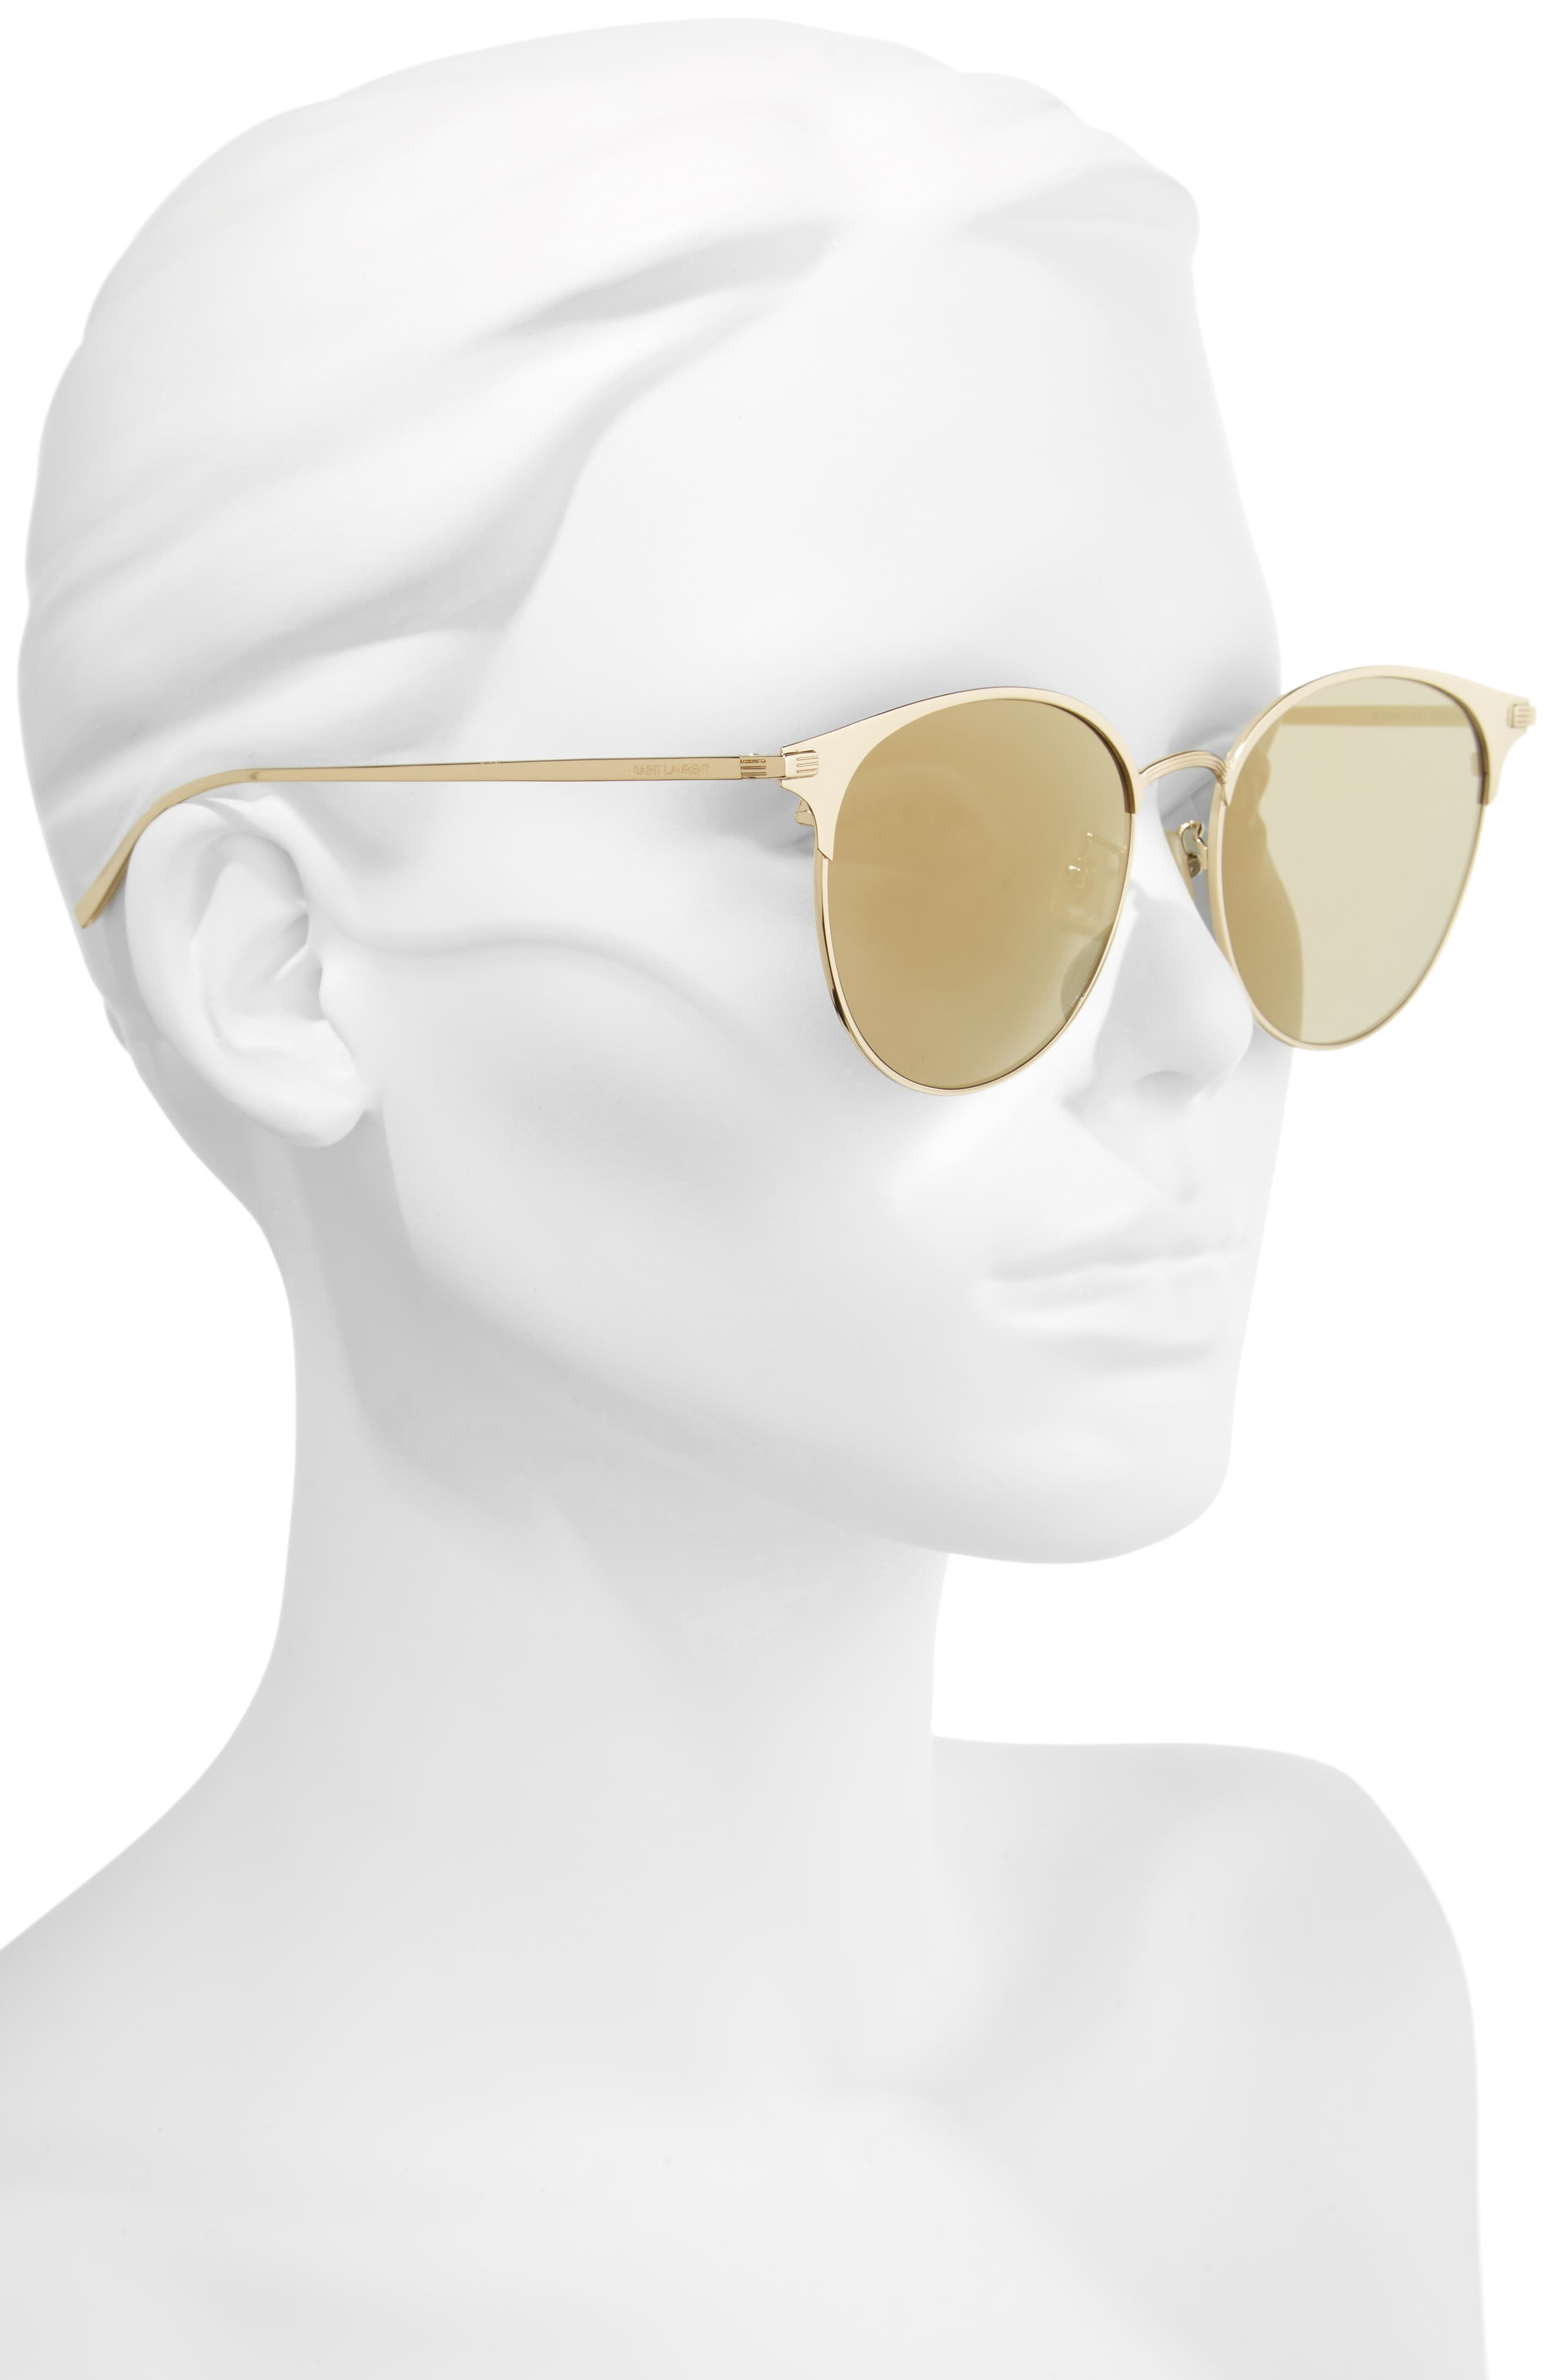 57mm Sunglasses,                             Alternate thumbnail 2, color,                             Gold